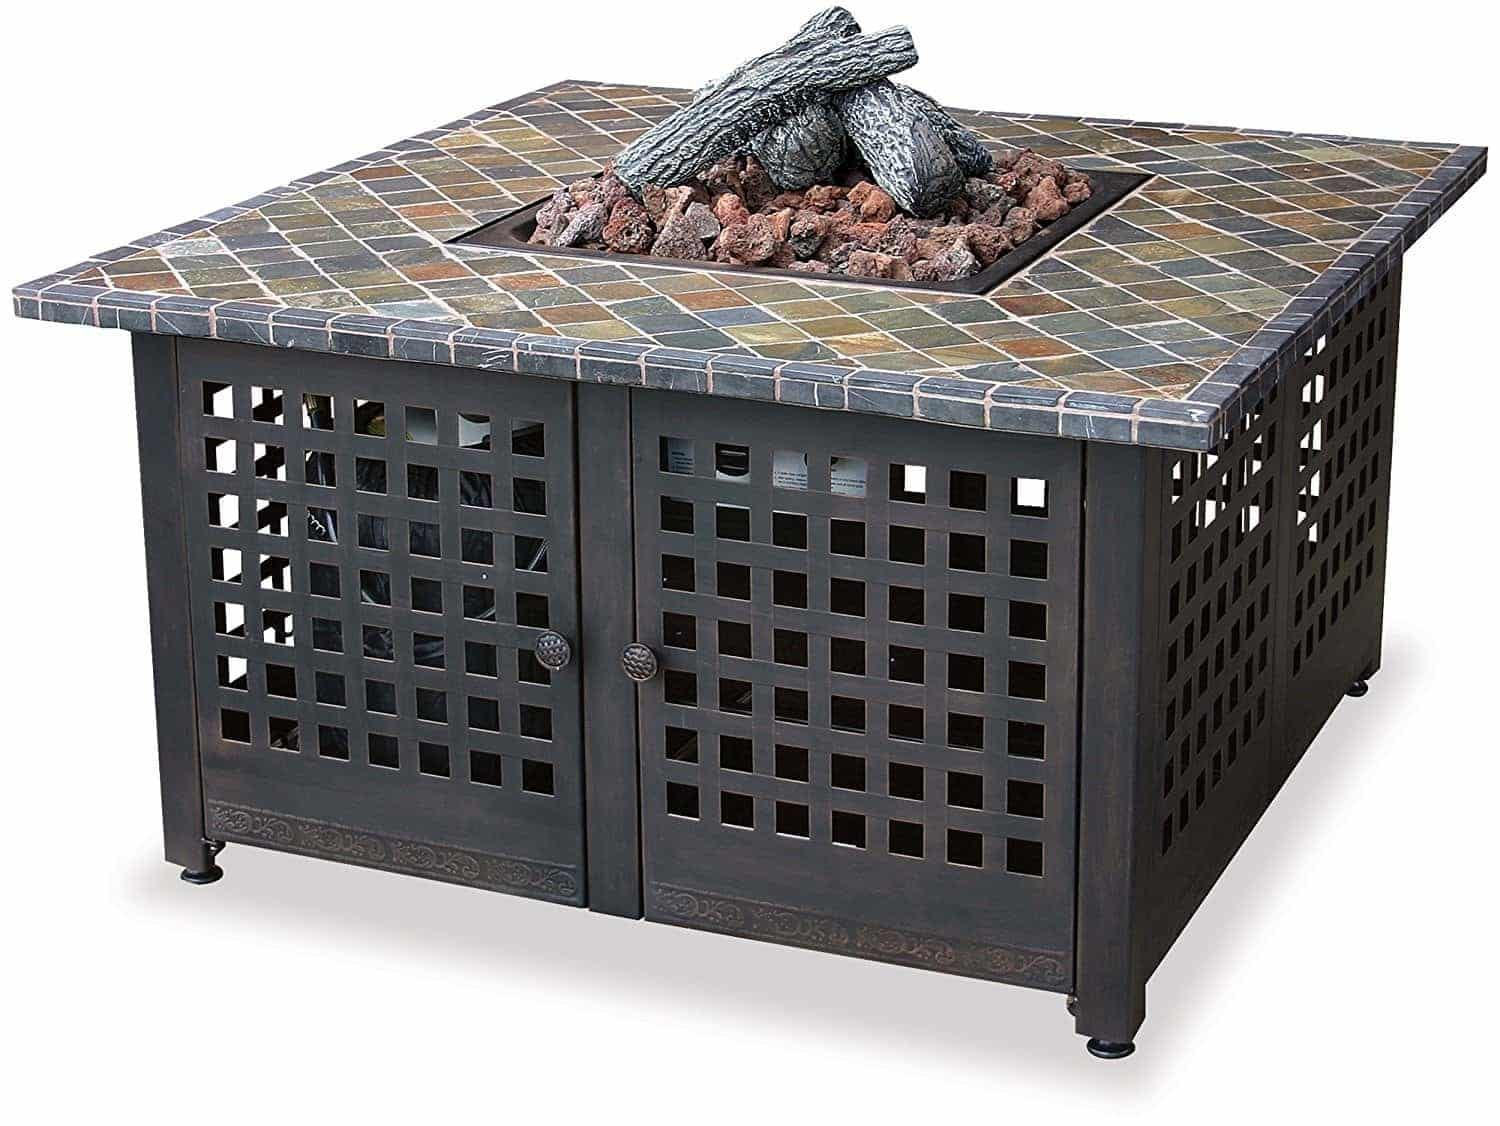 Blue Rhino Endless Summer, GAD860SP, LP Gas Outdoor Firebowl with Slate/Marble Mantel